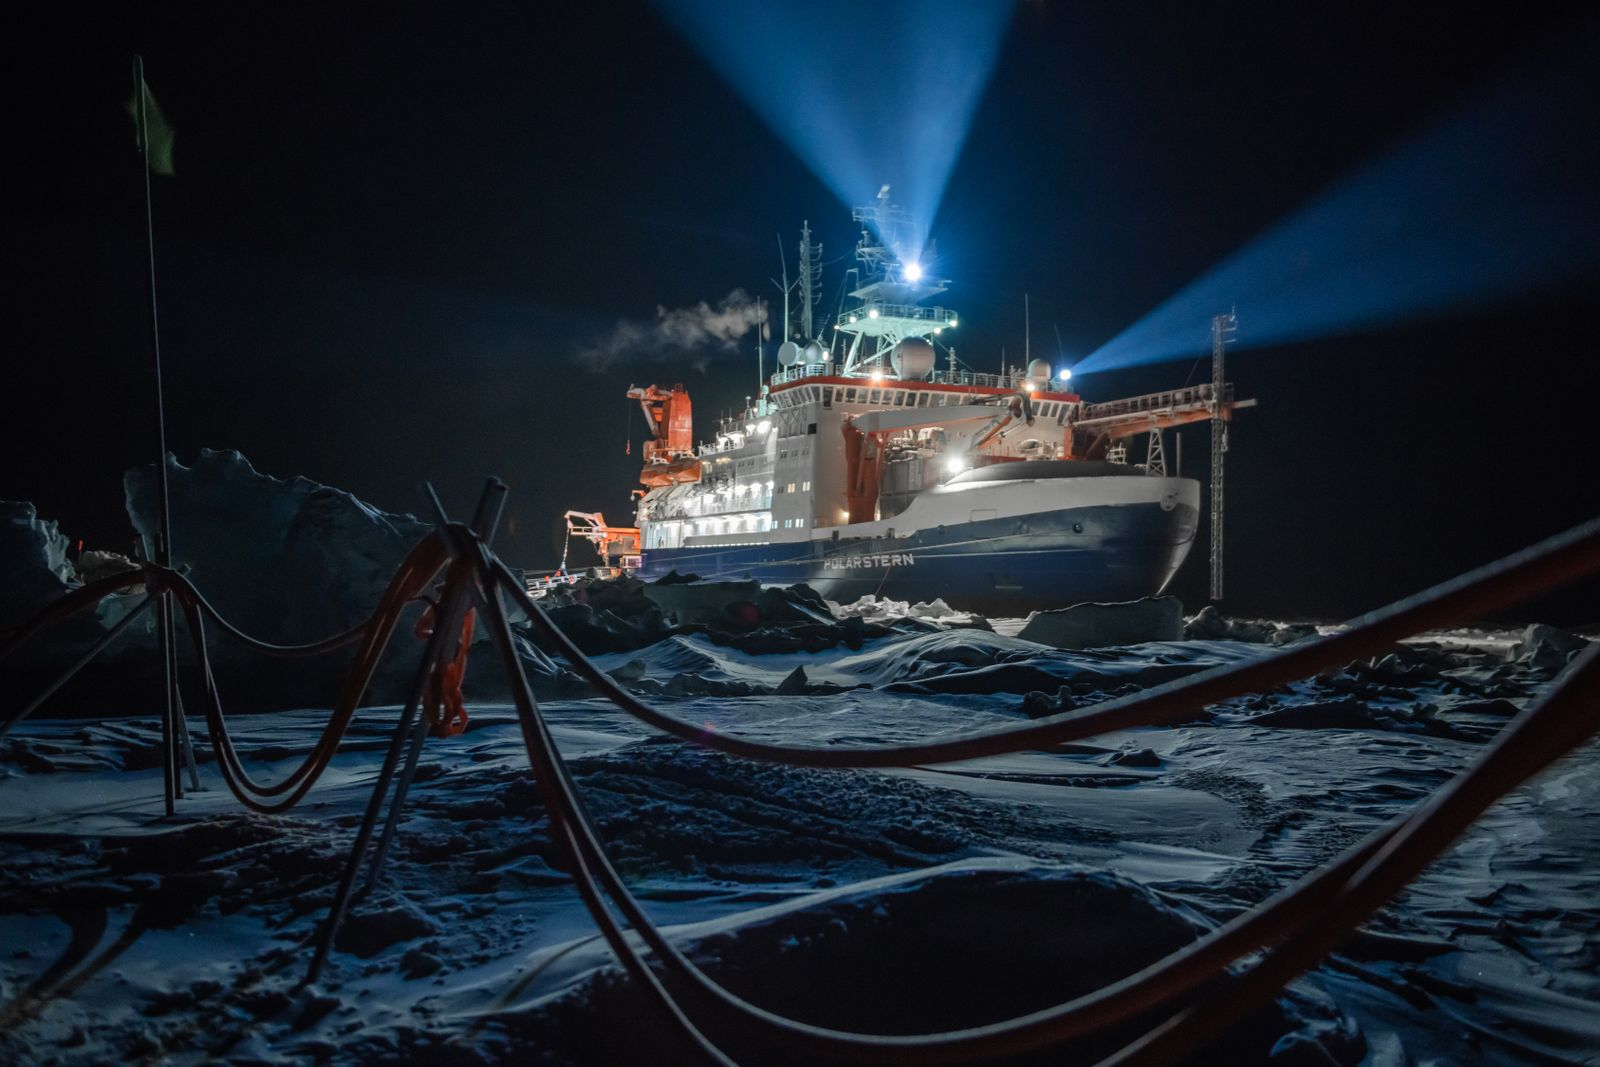 Esther Horvath/ Polarstern/ Mosaic Expedition